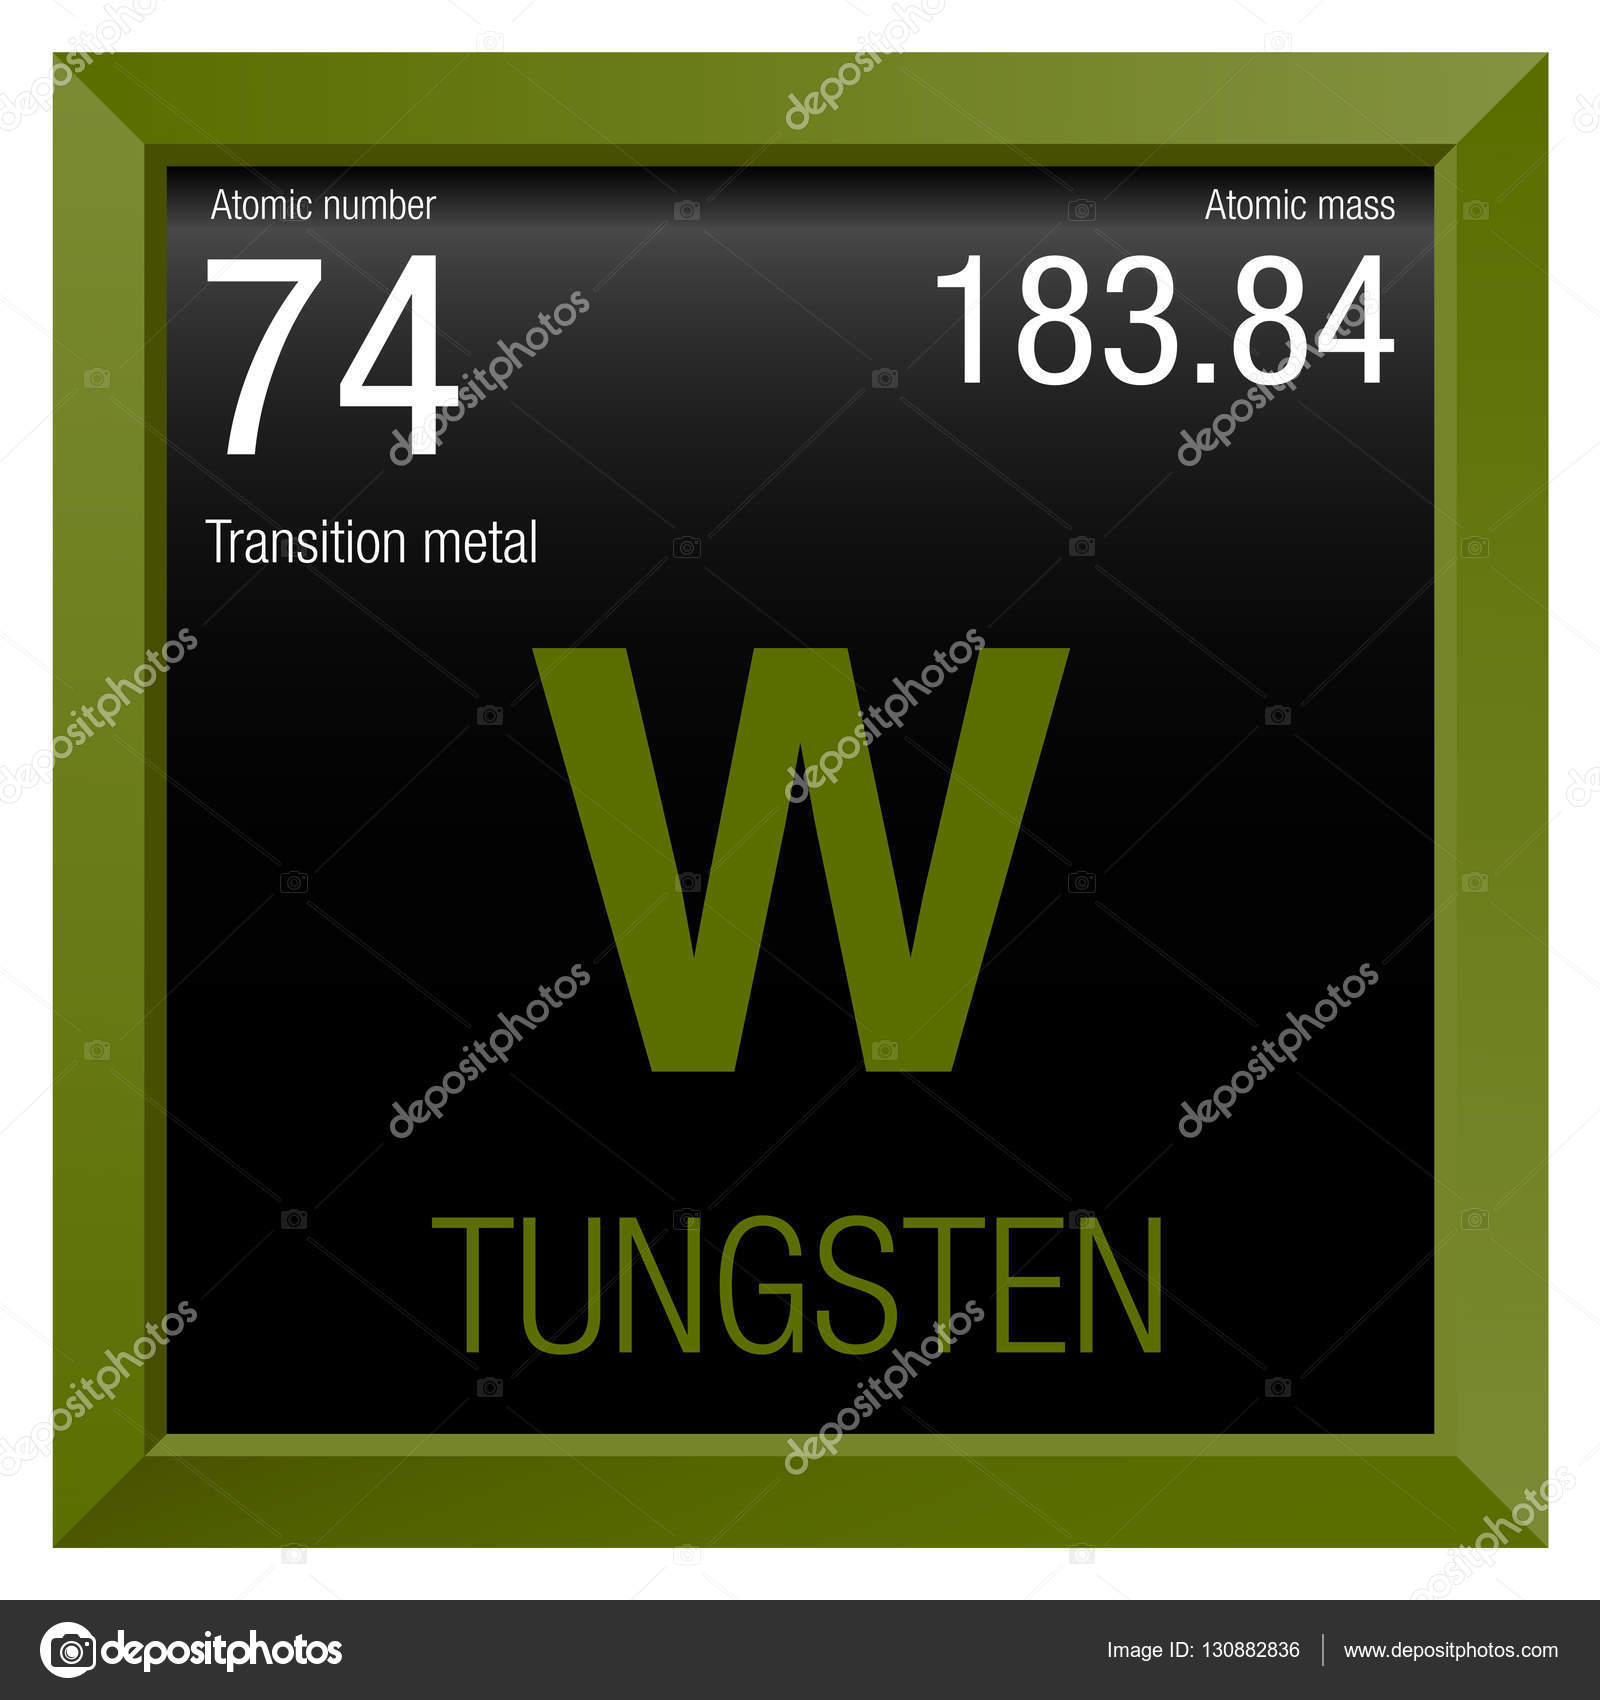 Atomic symbol tungsten image collections symbols and - Tungsten symbol periodic table ...